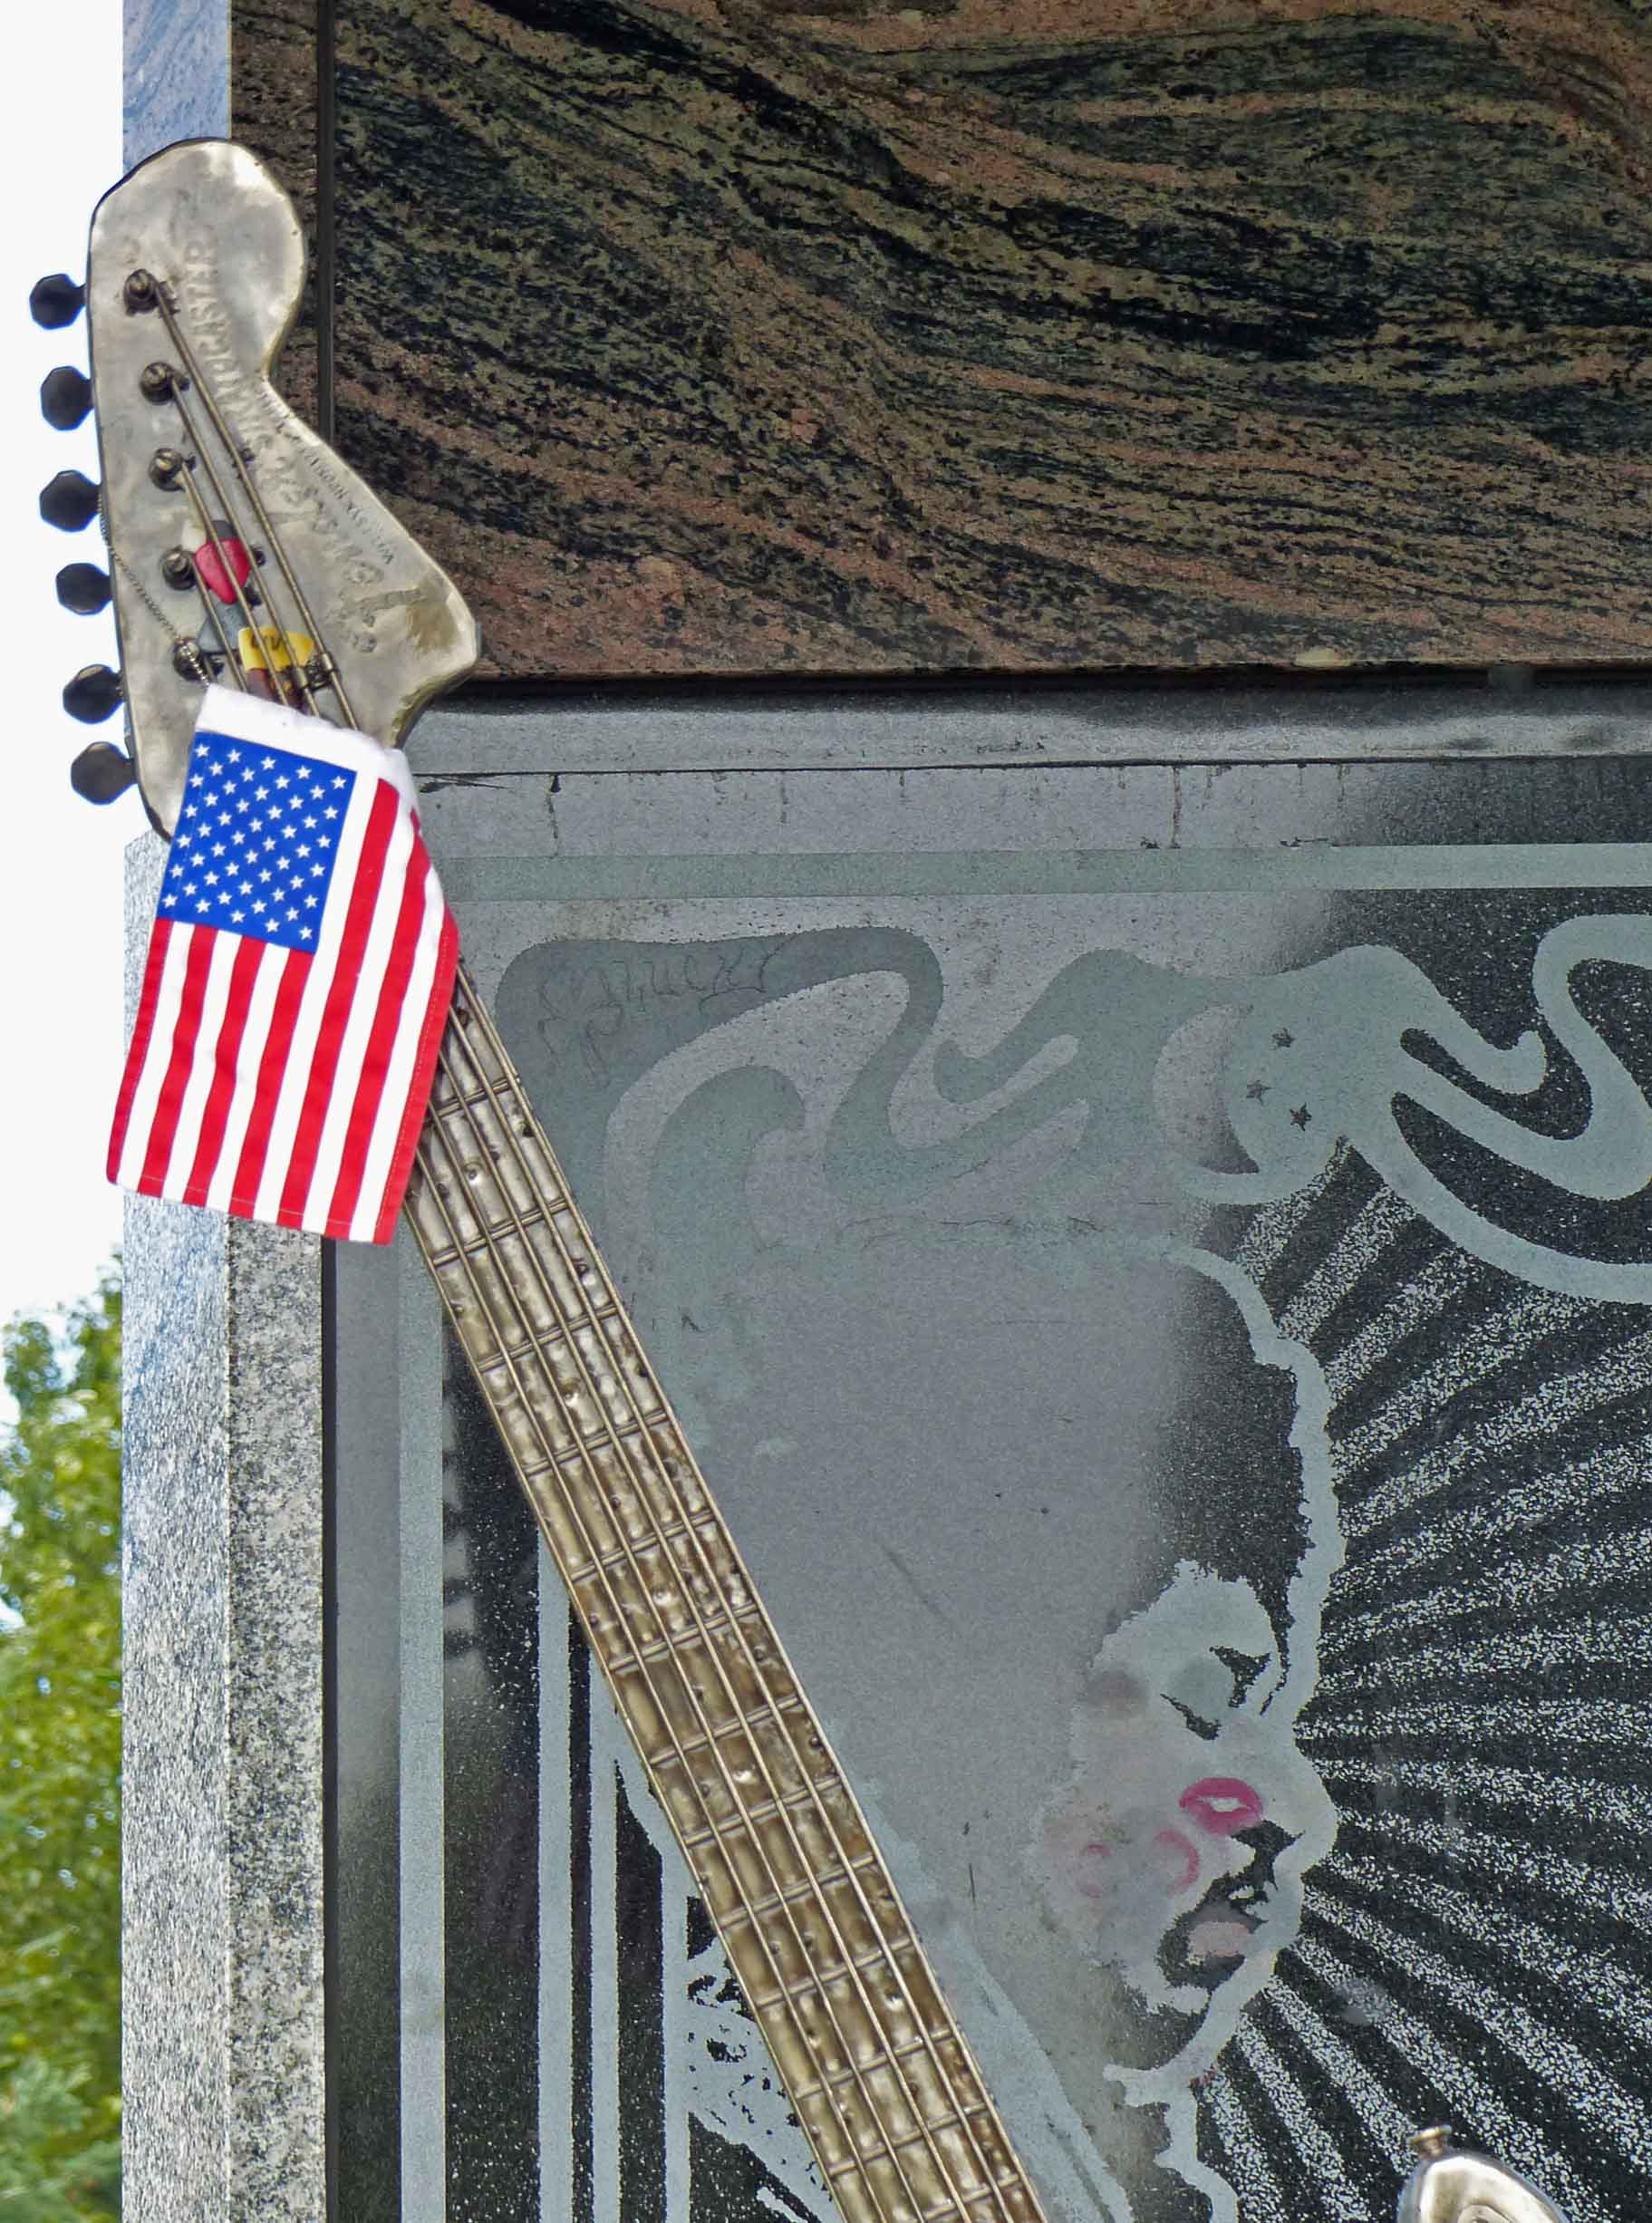 Metal sculpture of a guitar head with small US flag